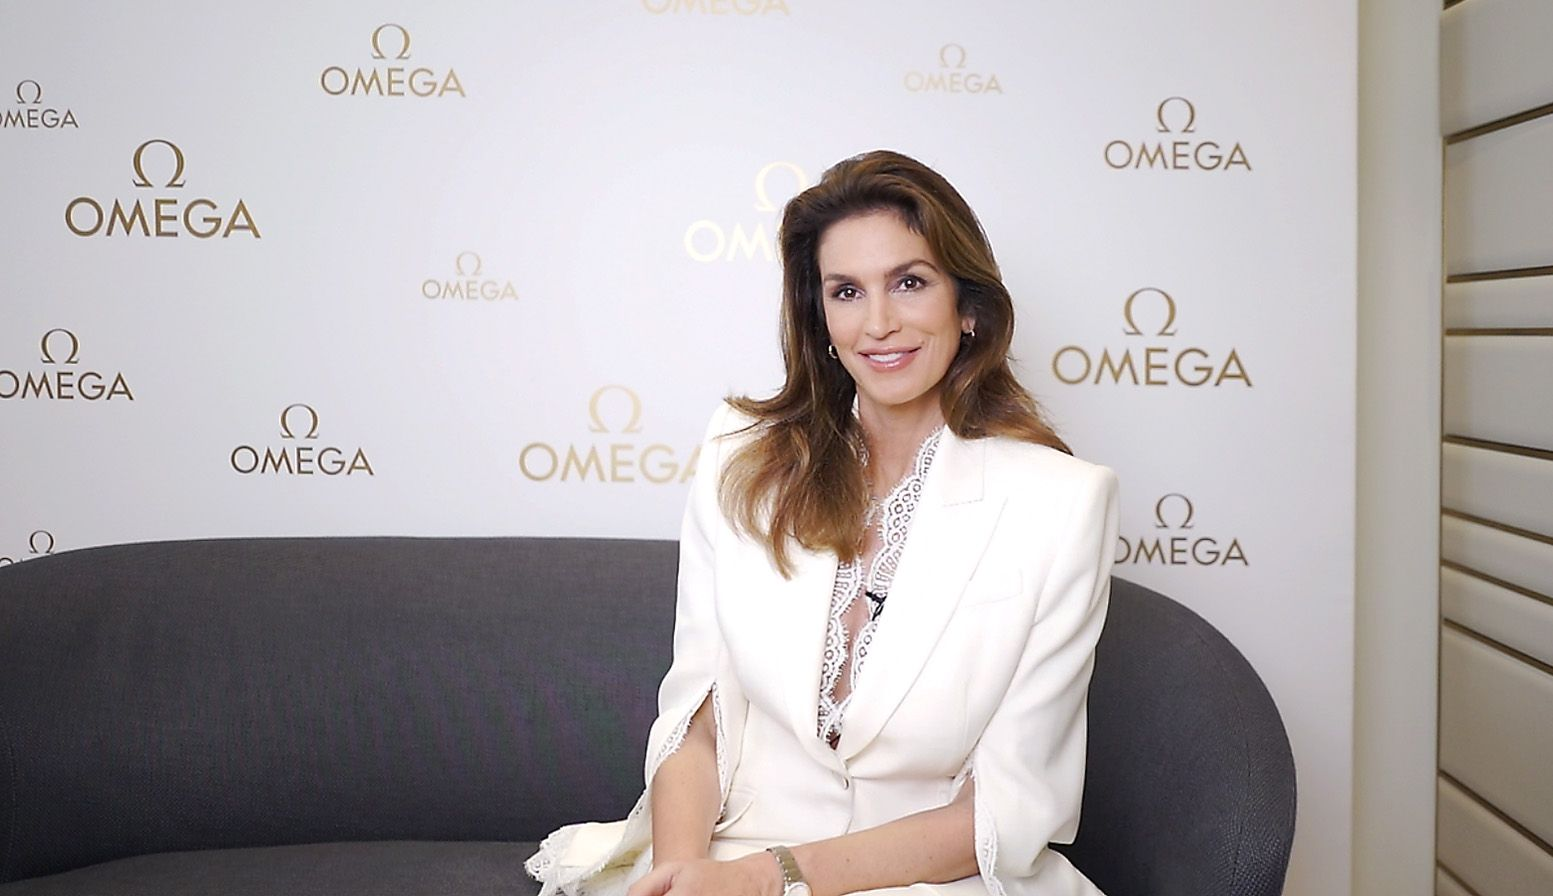 Exclusive: Cindy Crawford Reflects On Her Journey With Omega